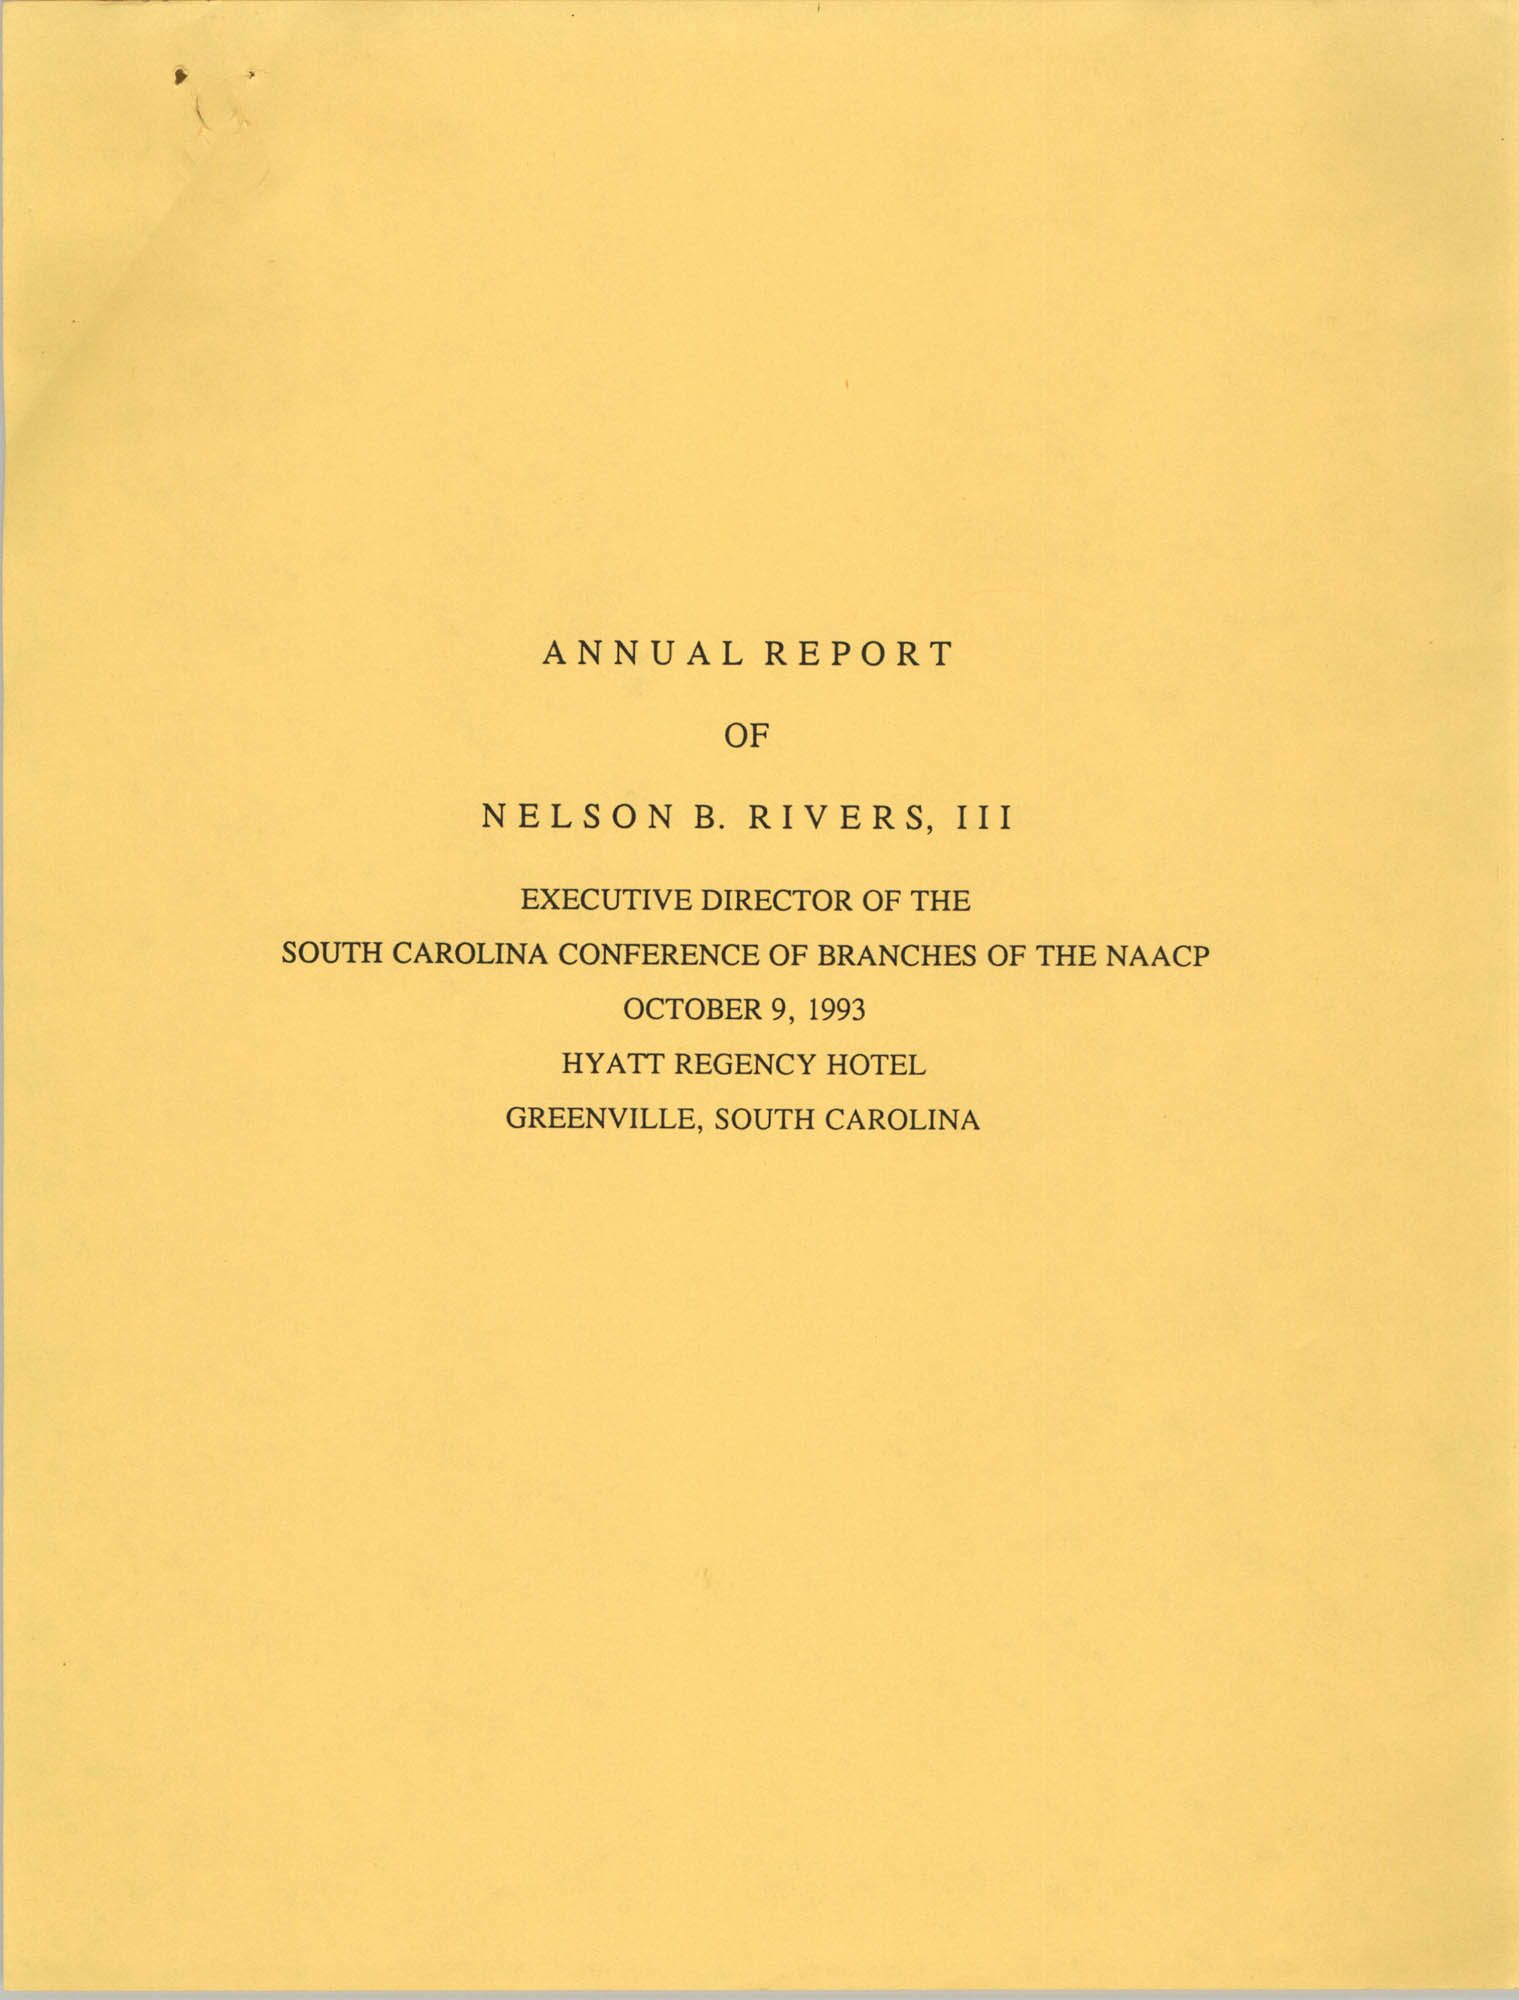 South Carolina Conference of Branches of the NAACP, Annual Report, October 9, 1993